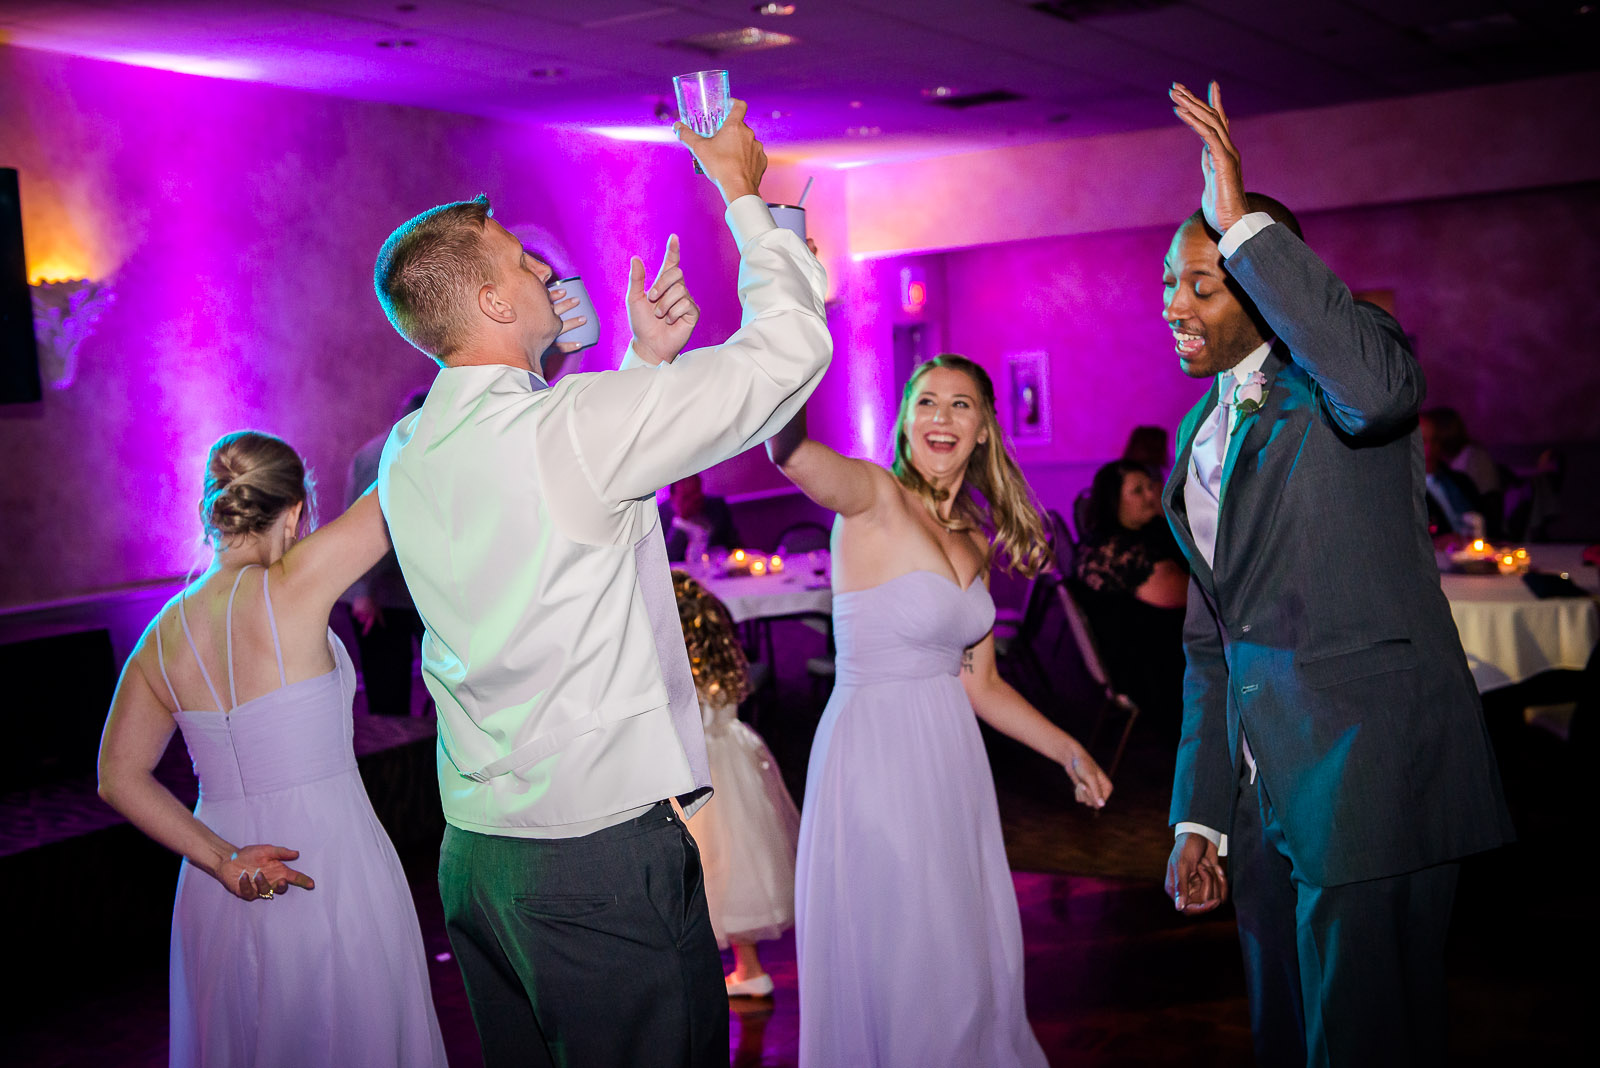 Eric_and_Christy_Photography_Blog_Julie_Adam_Wedding-58